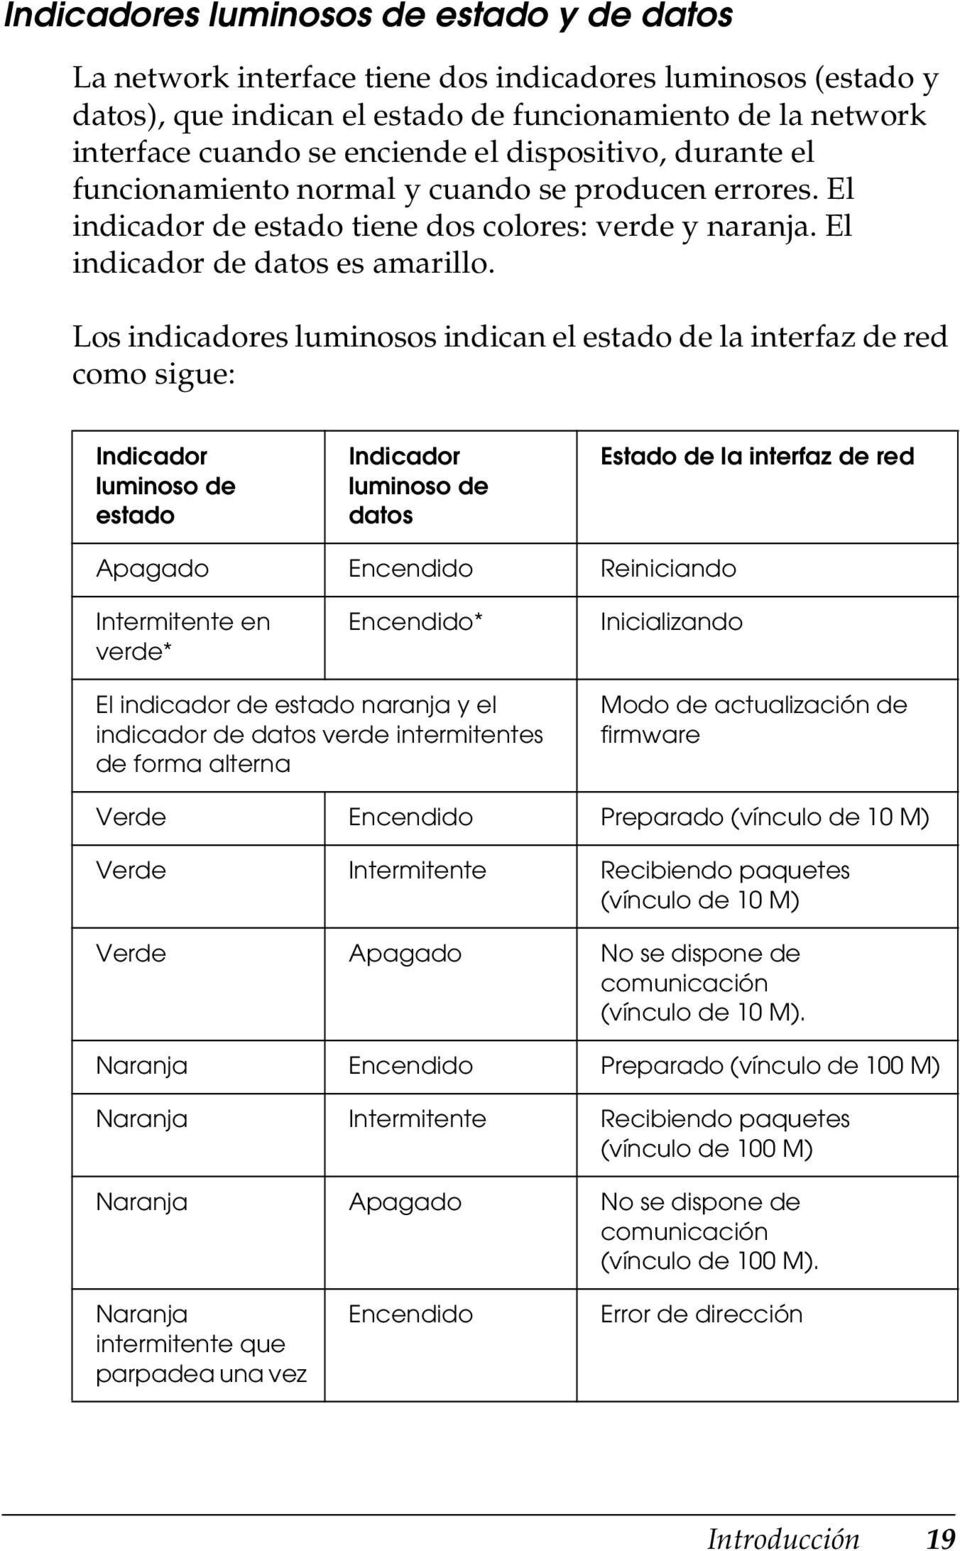 Los indicadores luminosos indican el estado de la interfaz de red como sigue: Indicador luminoso de estado Indicador luminoso de datos Estado de la interfaz de red Apagado Encendido Reiniciando